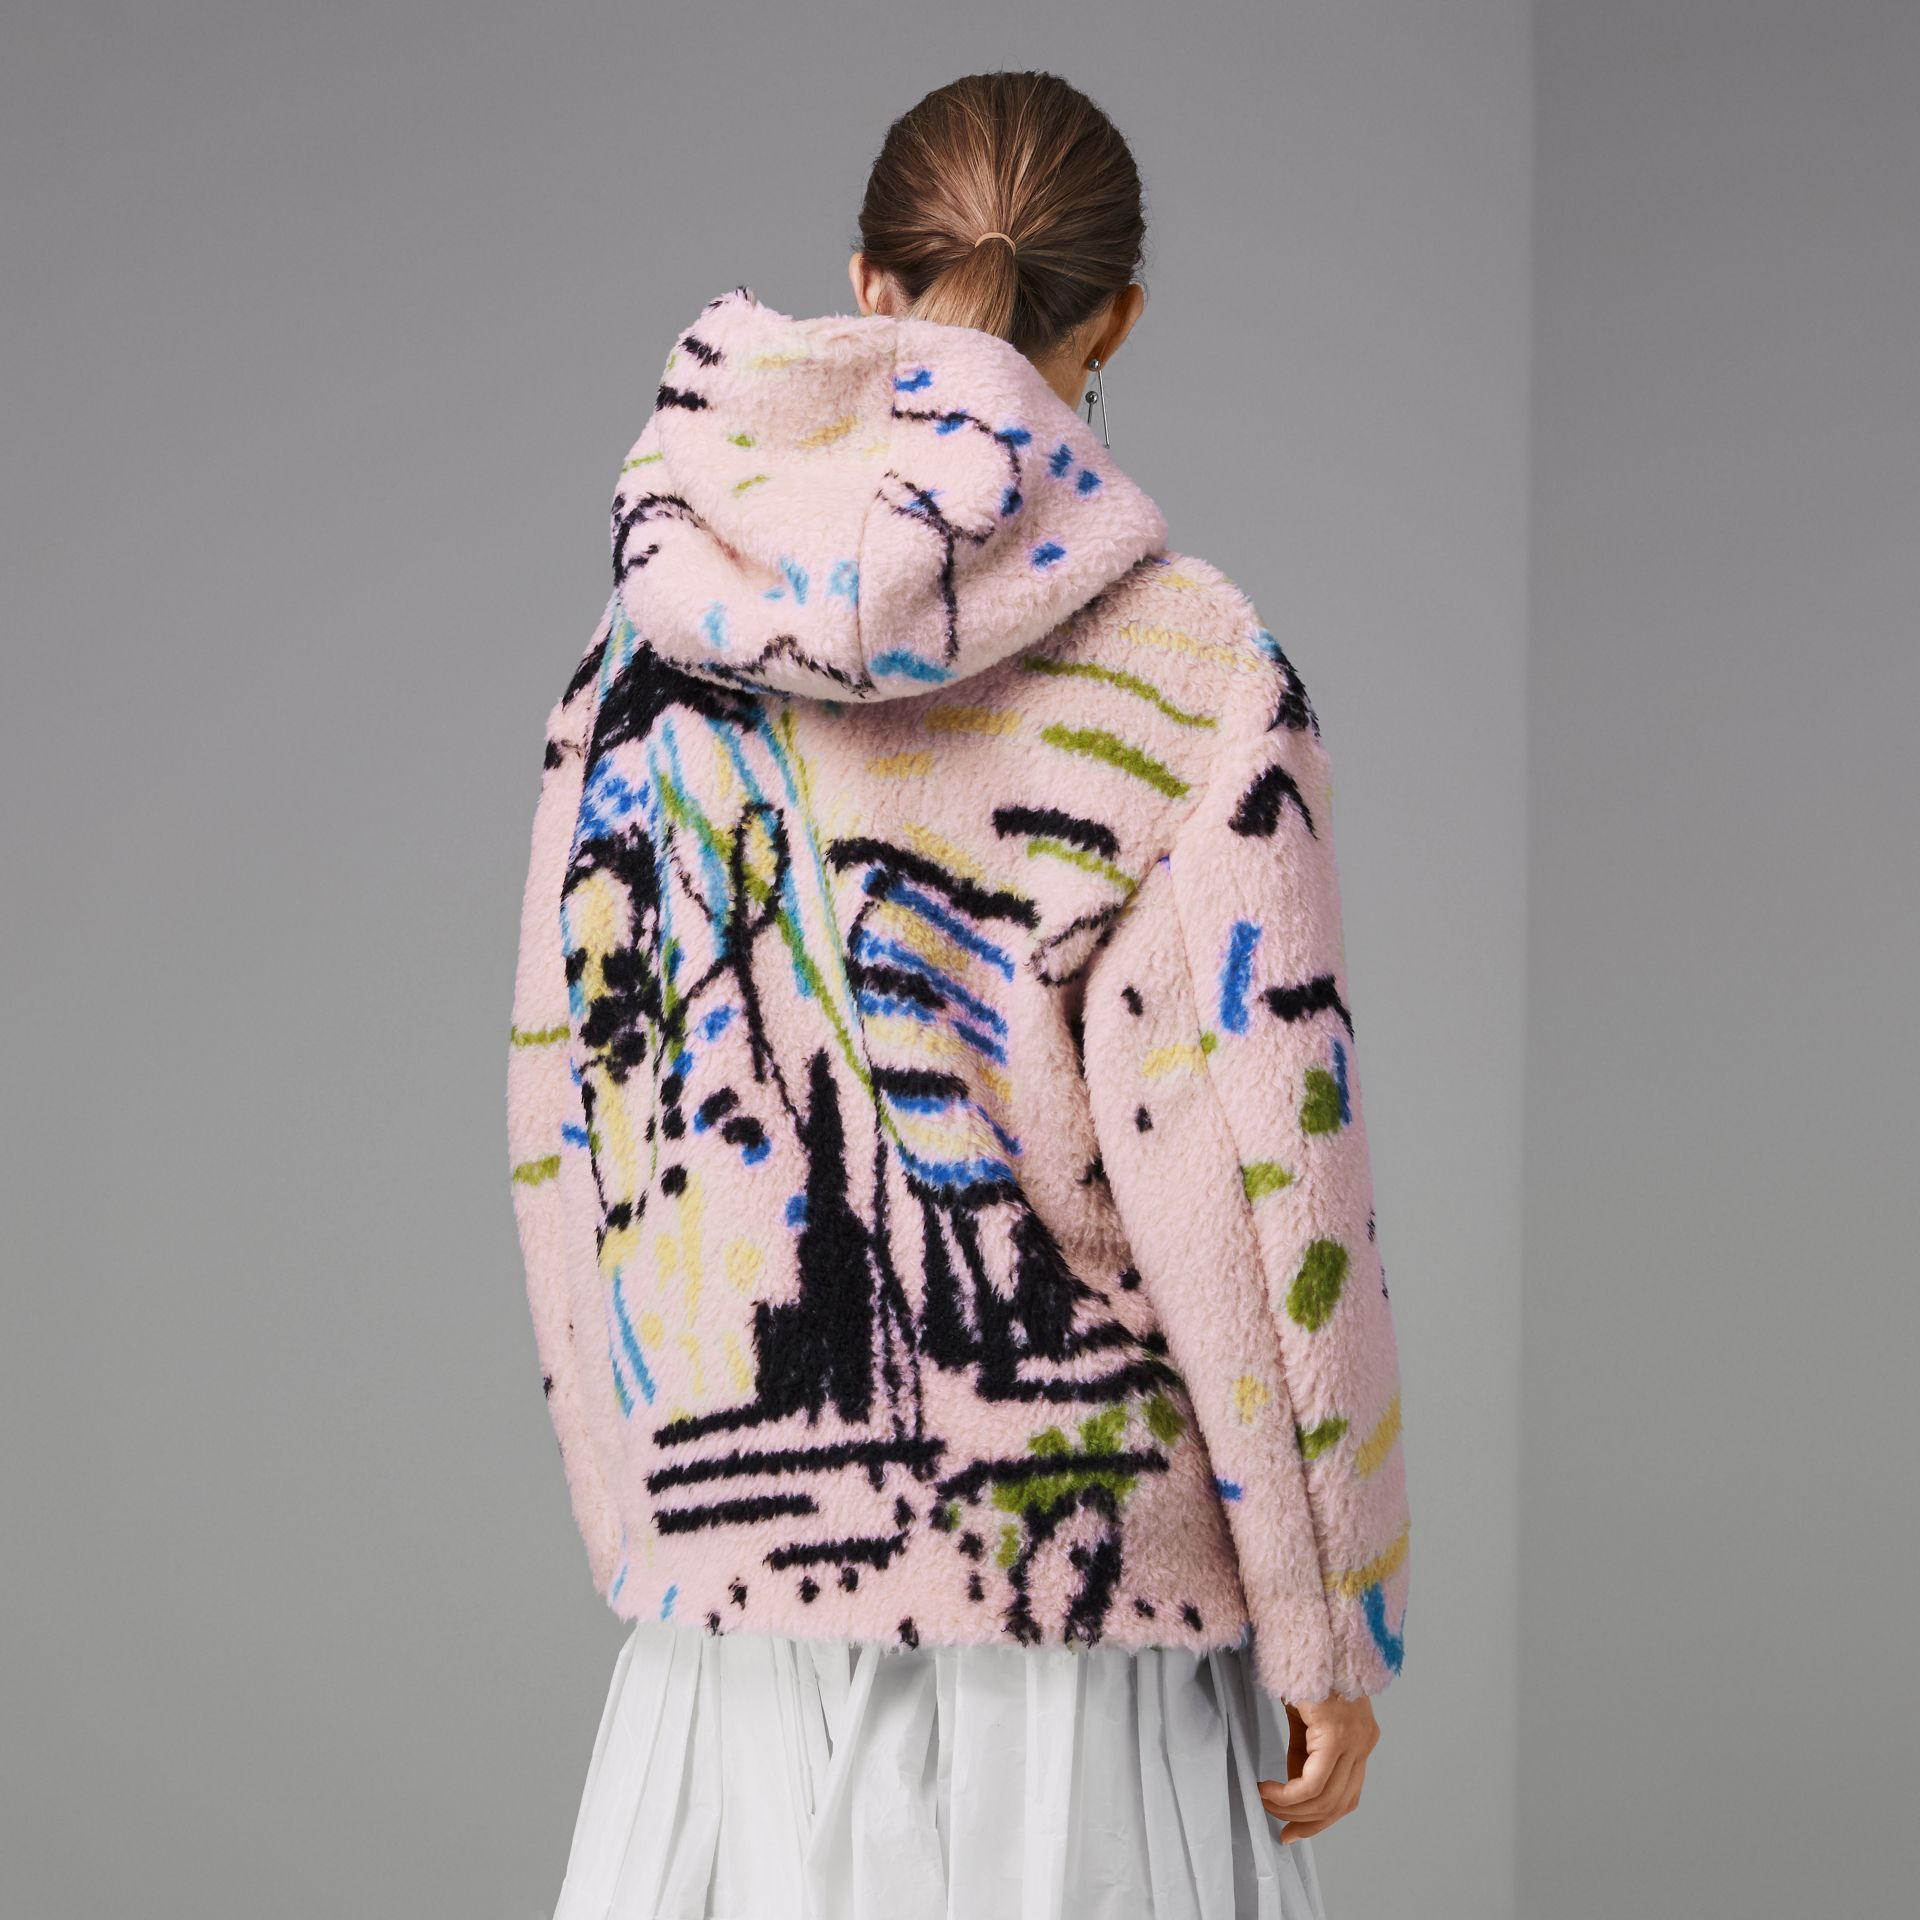 Graffiti Print Cashmere Silk Fleece Hoodie in Pale Rose - Women | Burberry - gallery image 2